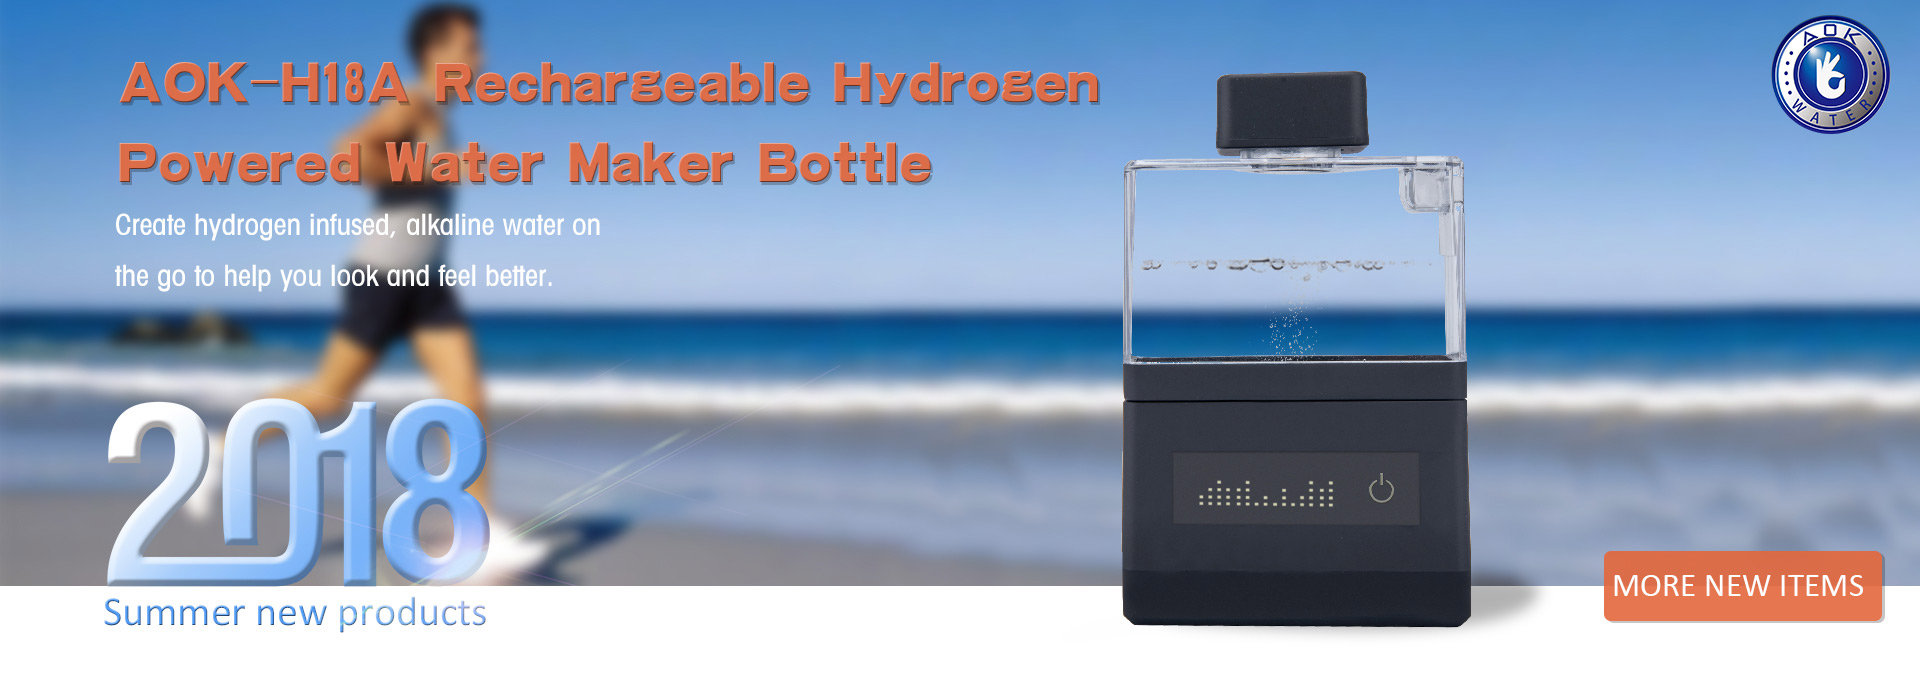 AOK-H18A Rechargeable Hygrogen Powered Water Maker Bottle